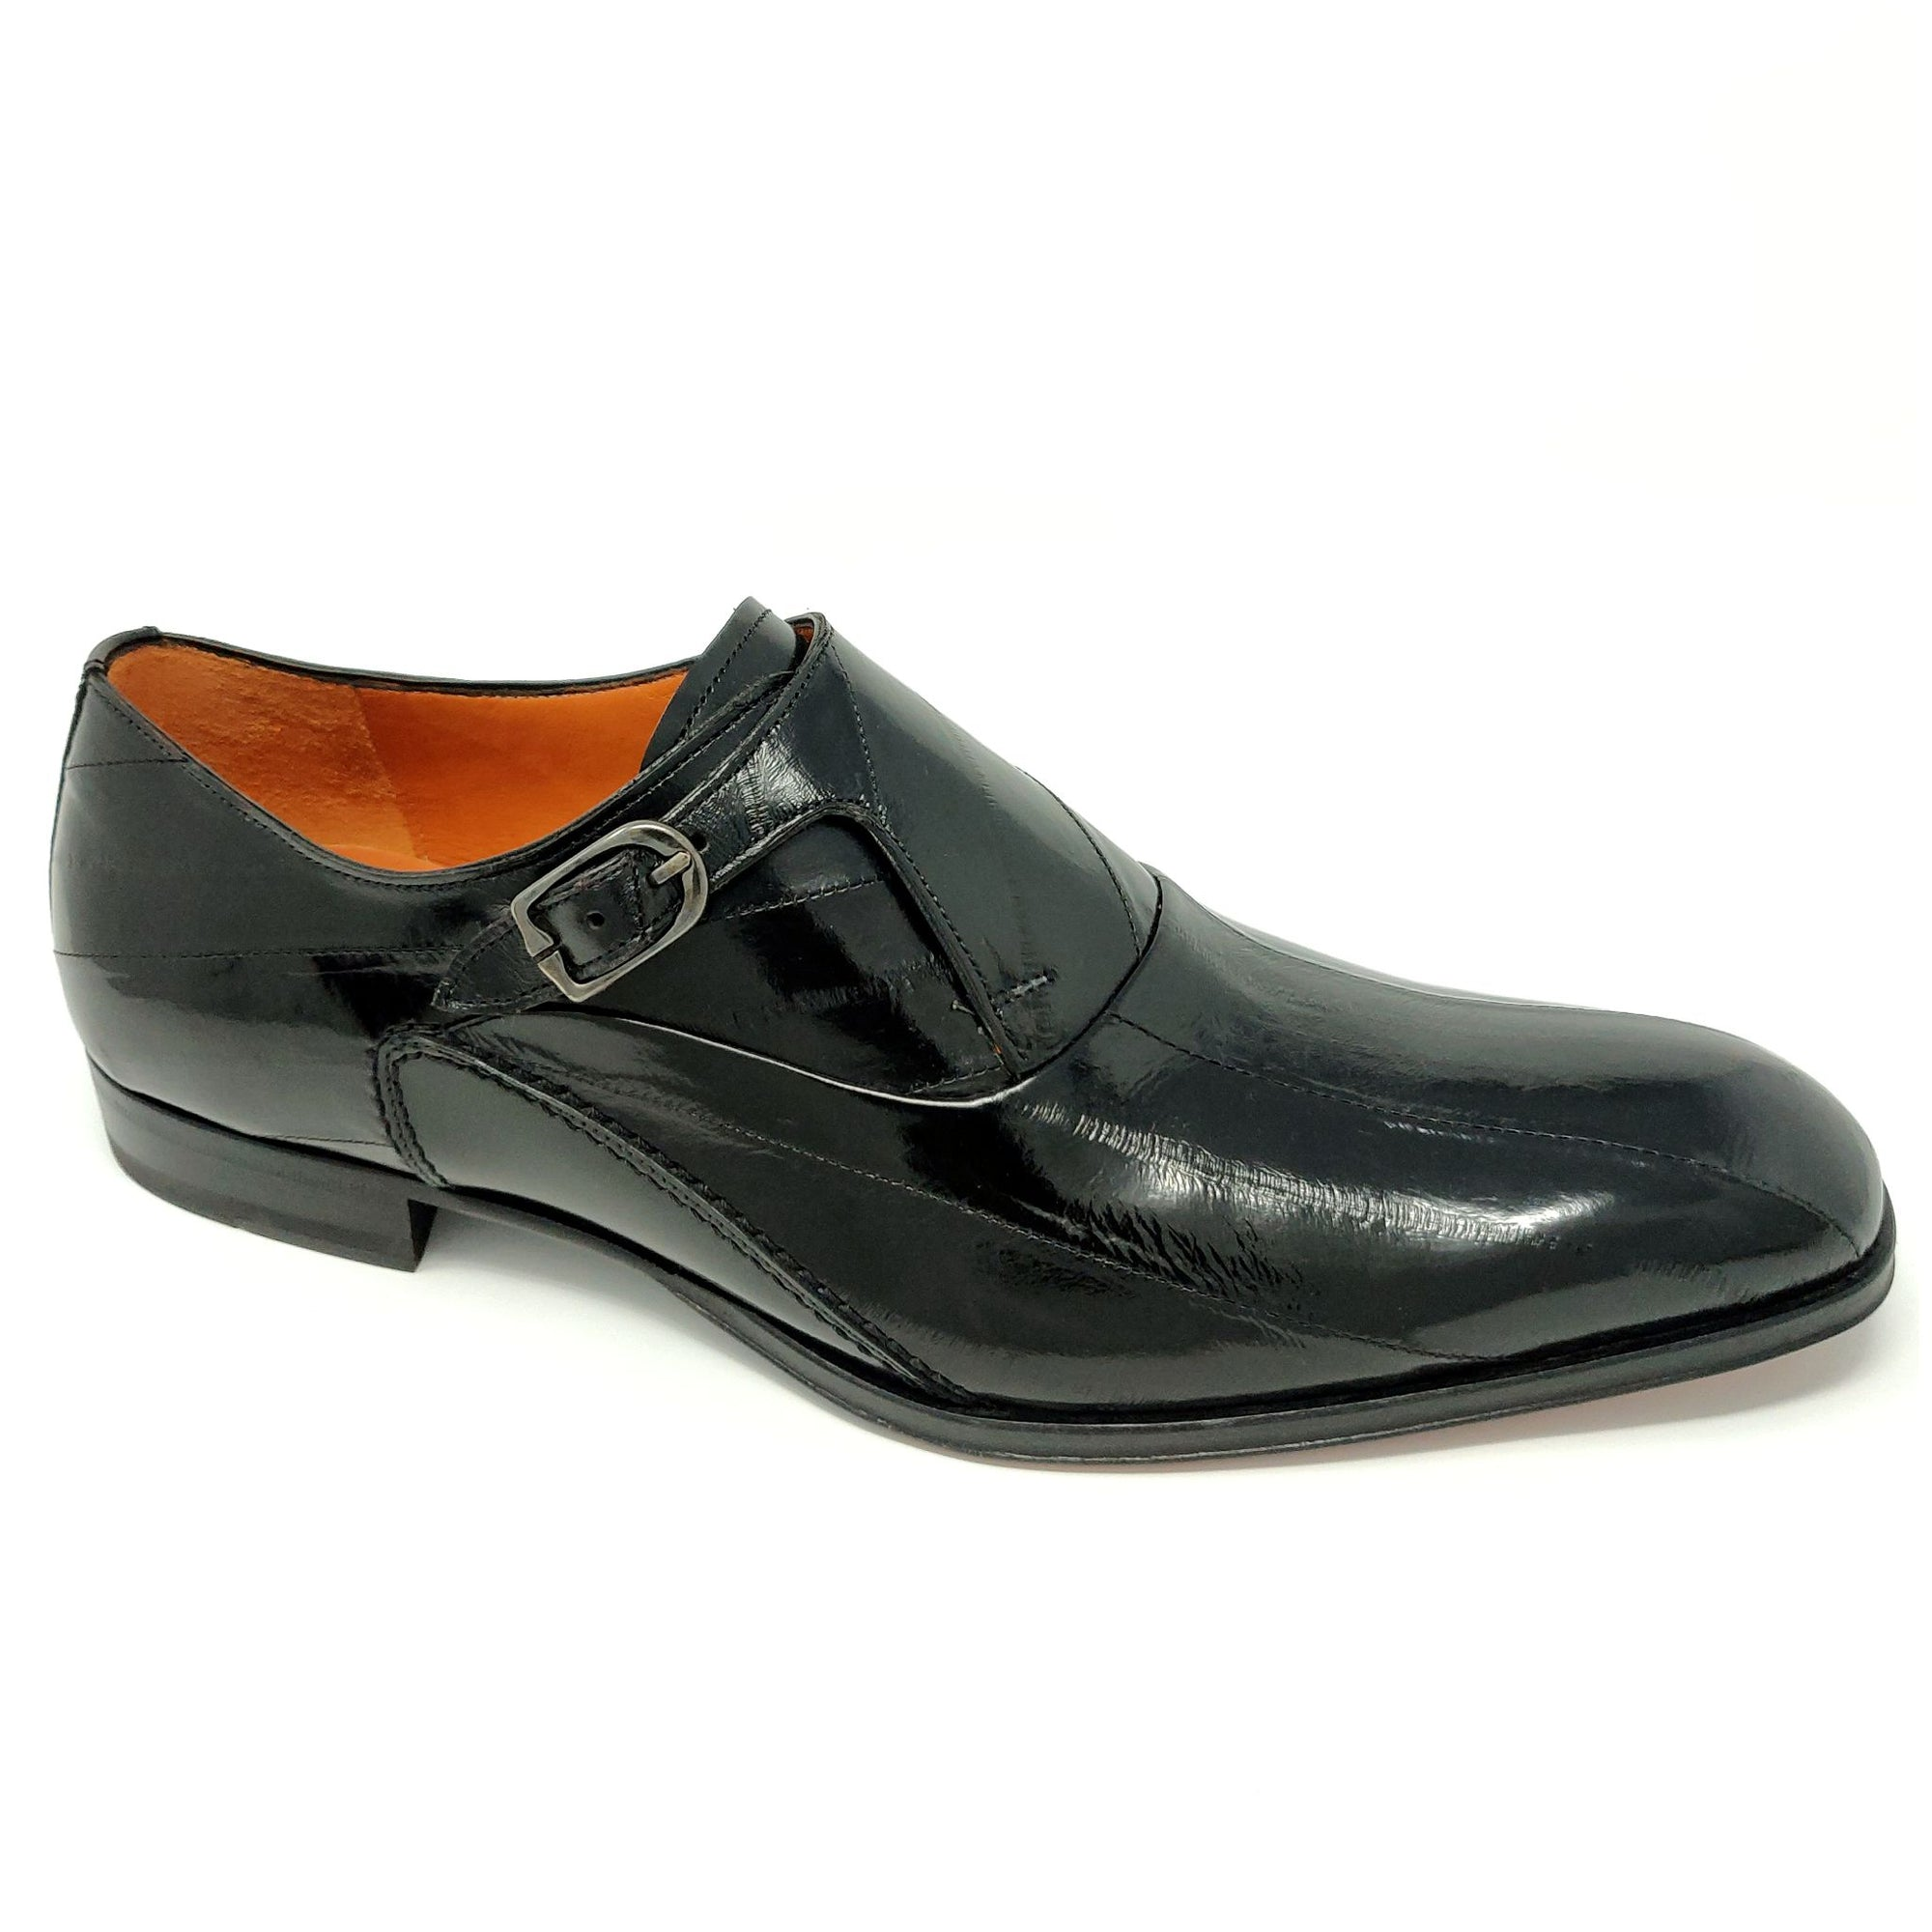 Mezlan Orleans Eel Skin Monk Strap - Black Shoes - Dapperfam.com